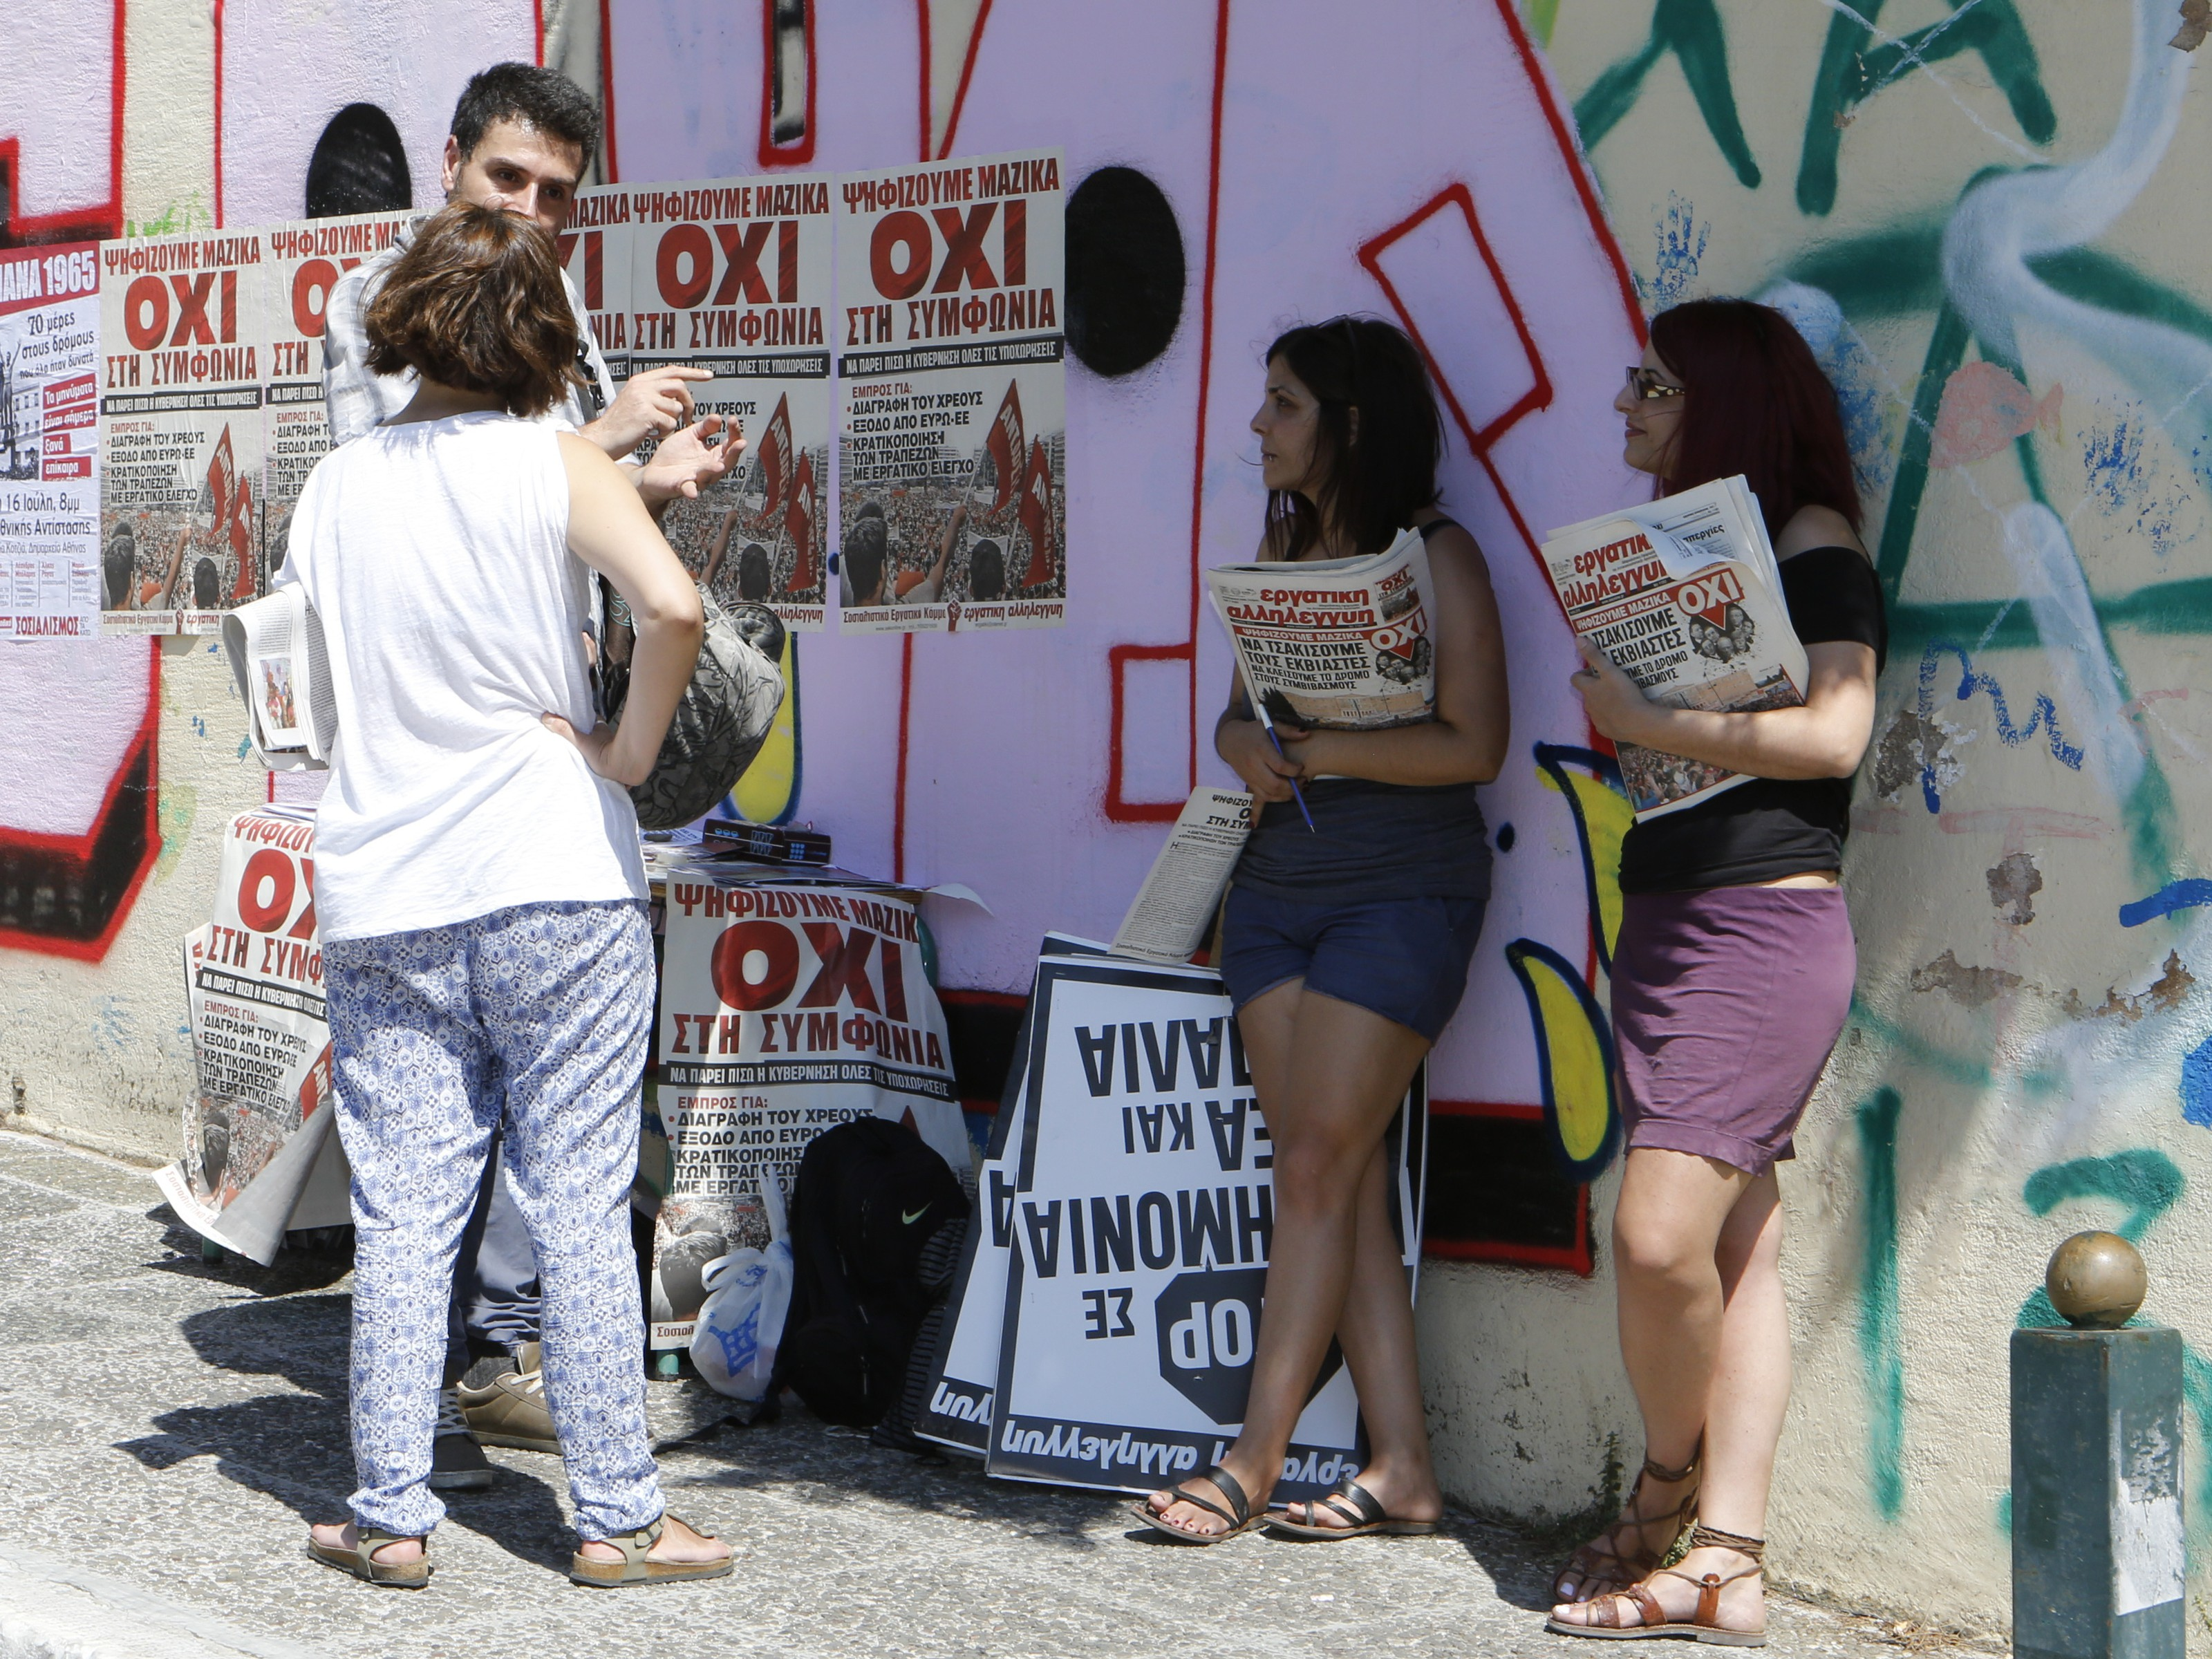 'Oxi'  (Greek for no) campaigners have a stall near a